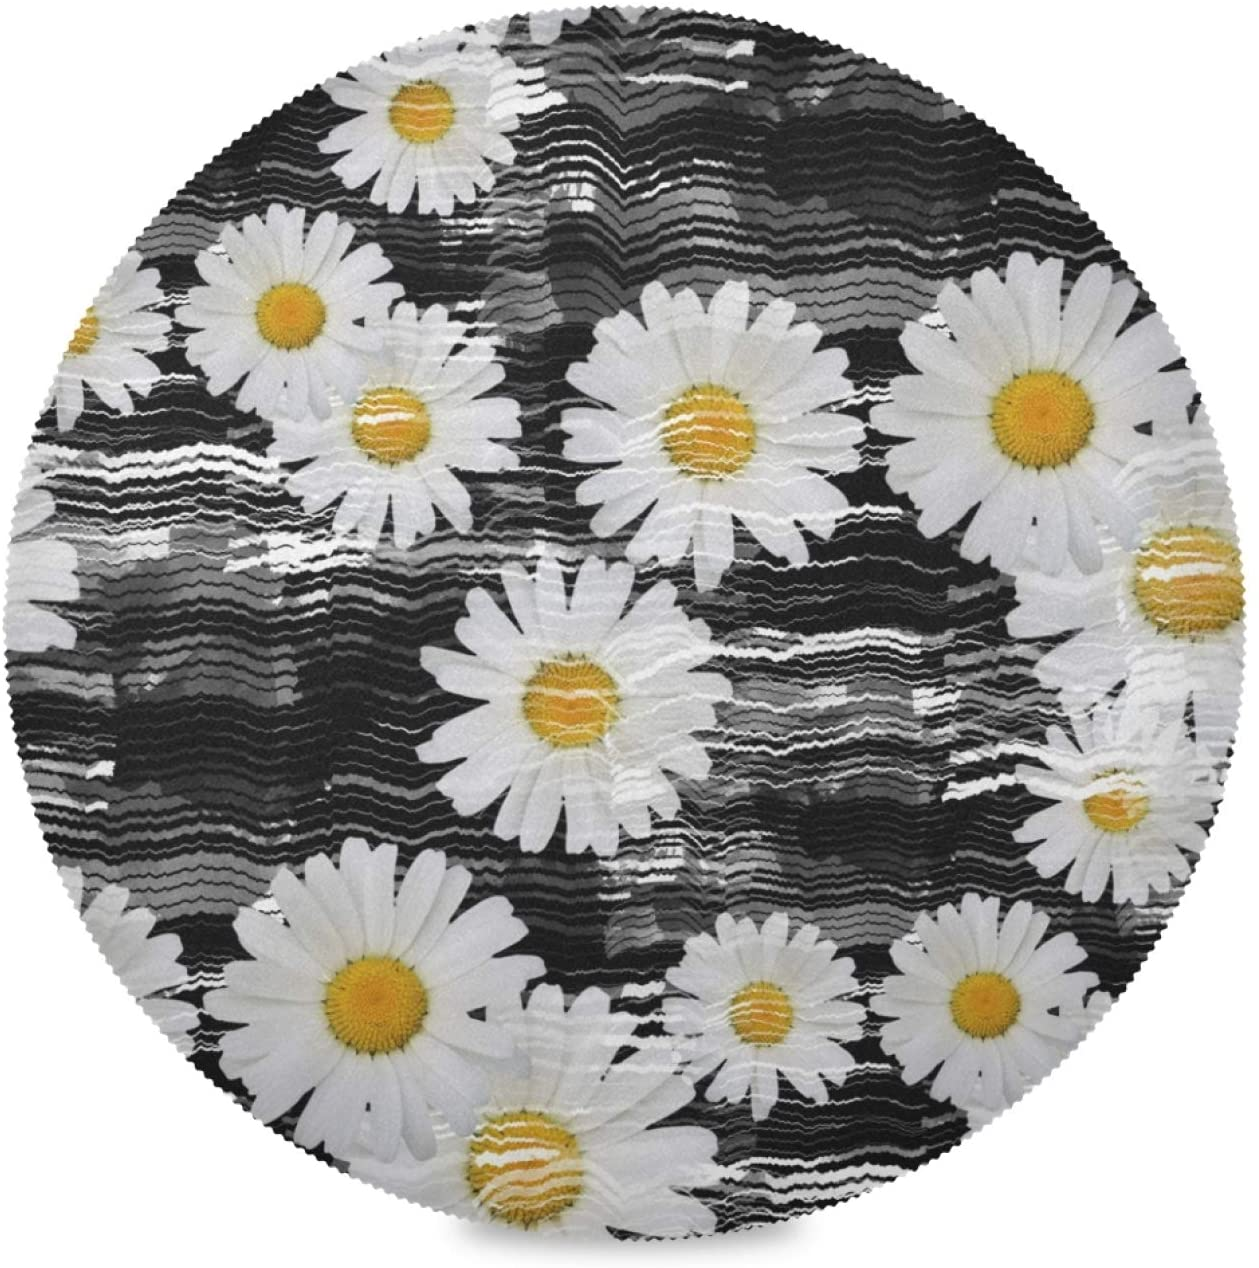 Wudan Round Placemats Daisies Set of 4 Pieces Heat-Resistant Table Mats for Dining Kitchen Table Decoration Skid-Proof Stain Resistant Easy to Clean(Diameter15.4inch)